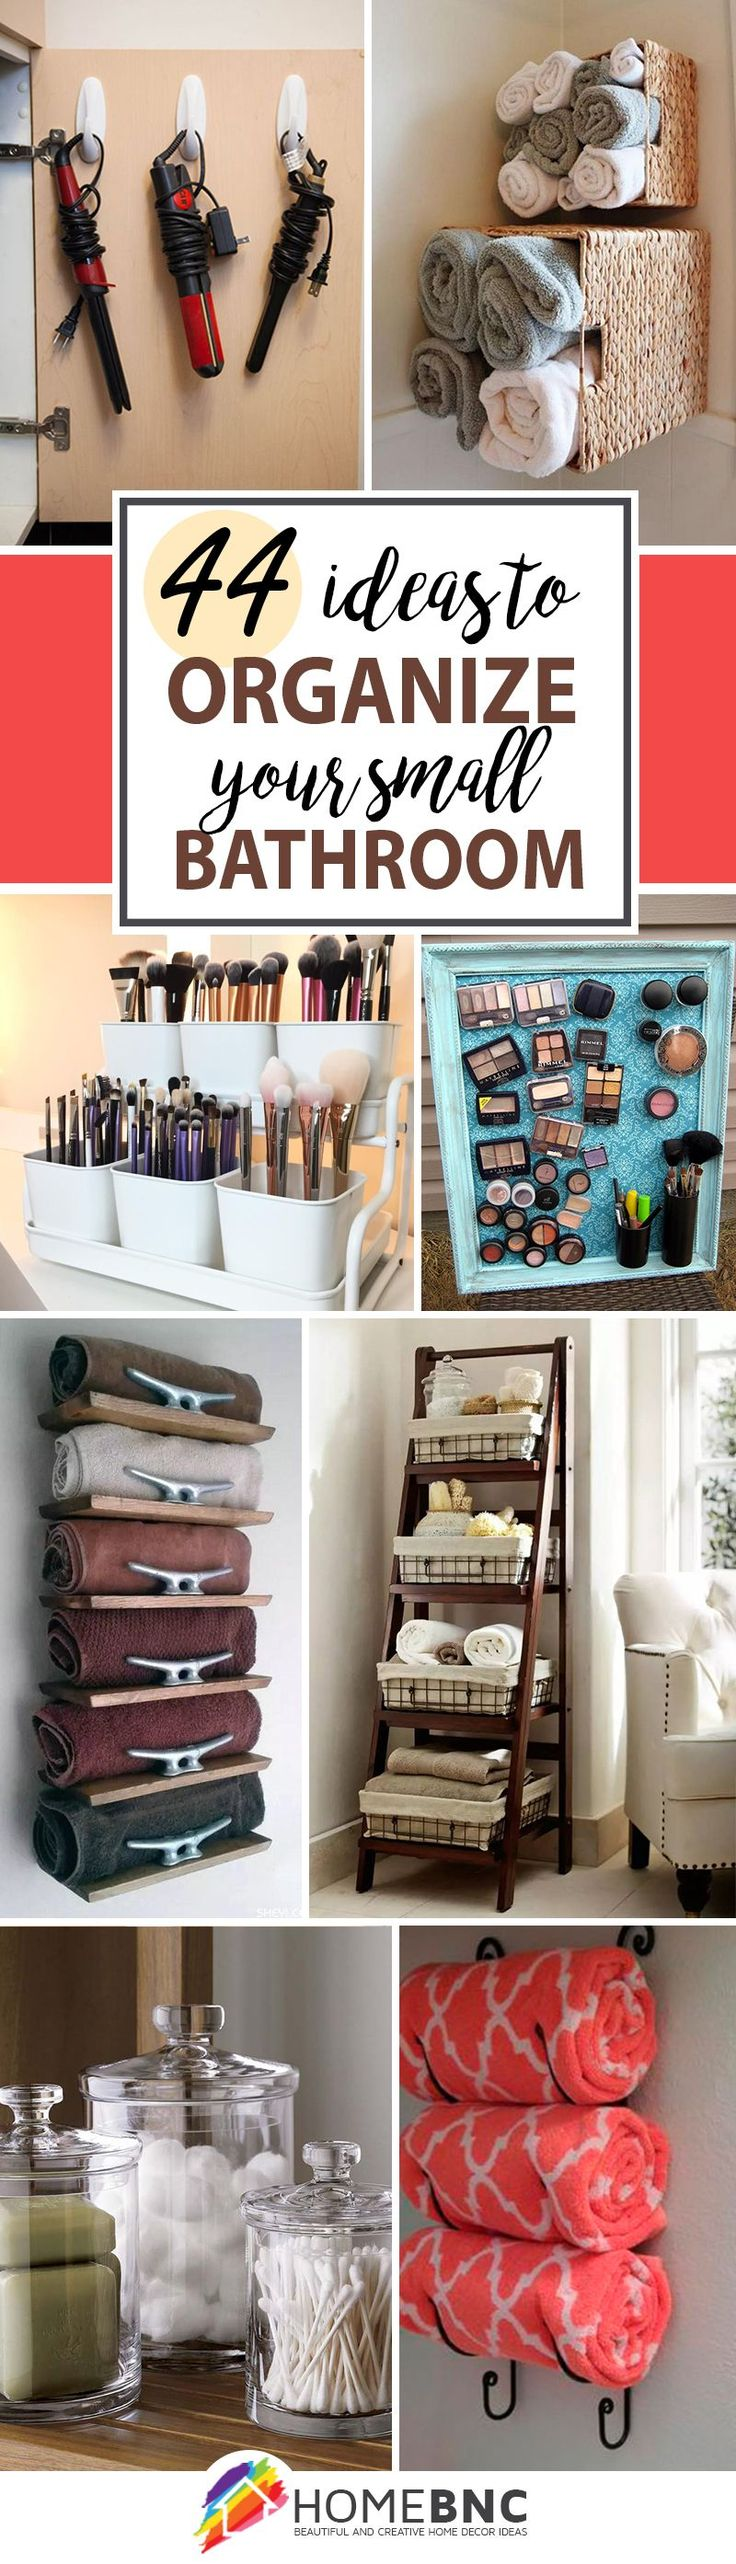 44 Unique Storage Ideas for a Small Bathroom to Make Yours BiggerBest 25  Small bathrooms decor ideas on Pinterest   Small bathroom  . Diy Small Bathroom Decor Pinterest. Home Design Ideas